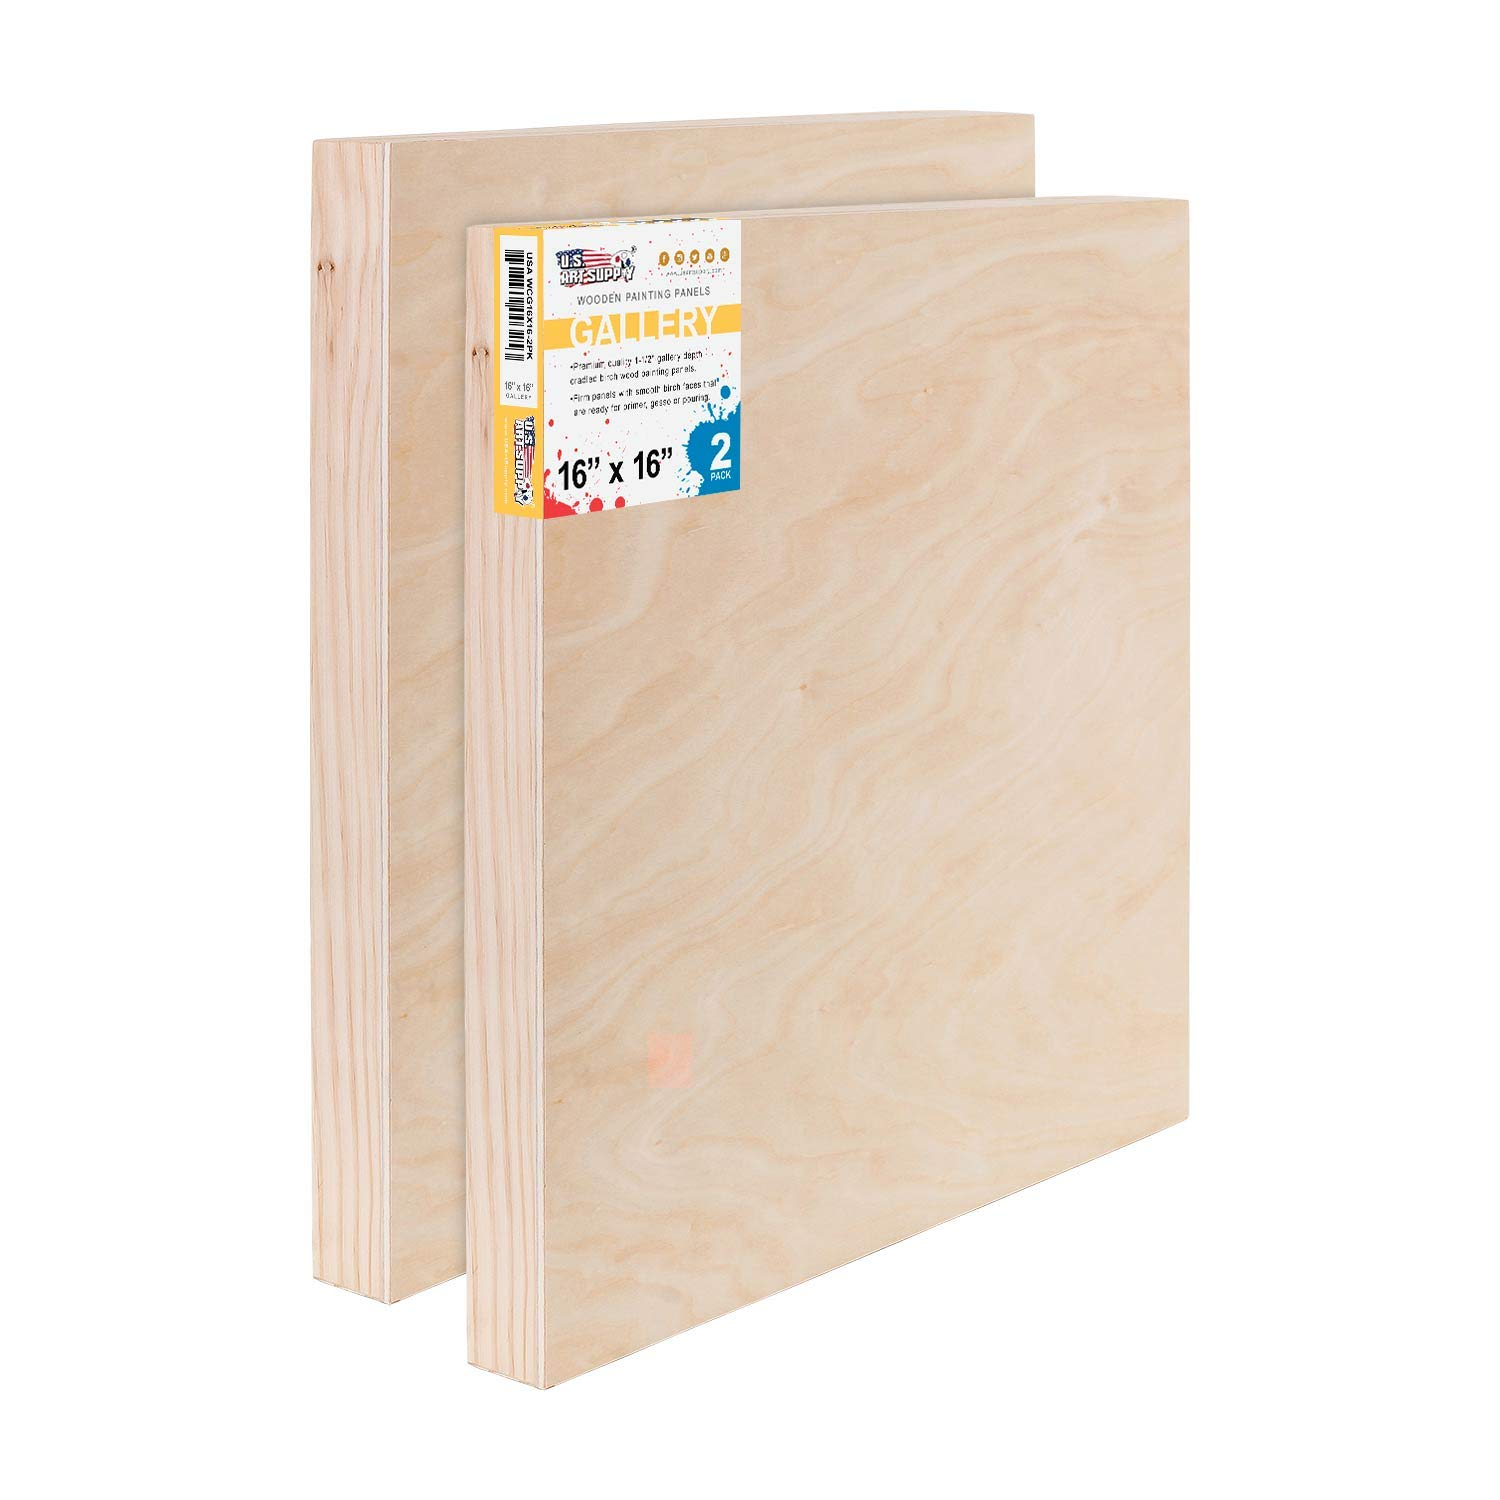 U.S. Art Supply 16'' x 16'' Birch Wood Paint Pouring Panel Boards, Gallery 1-1/2'' Deep Cradle (Pack of 2) - Artist Depth Wooden Wall Canvases - Painting Mixed-Media Craft, Acrylic, Oil, Encaustic